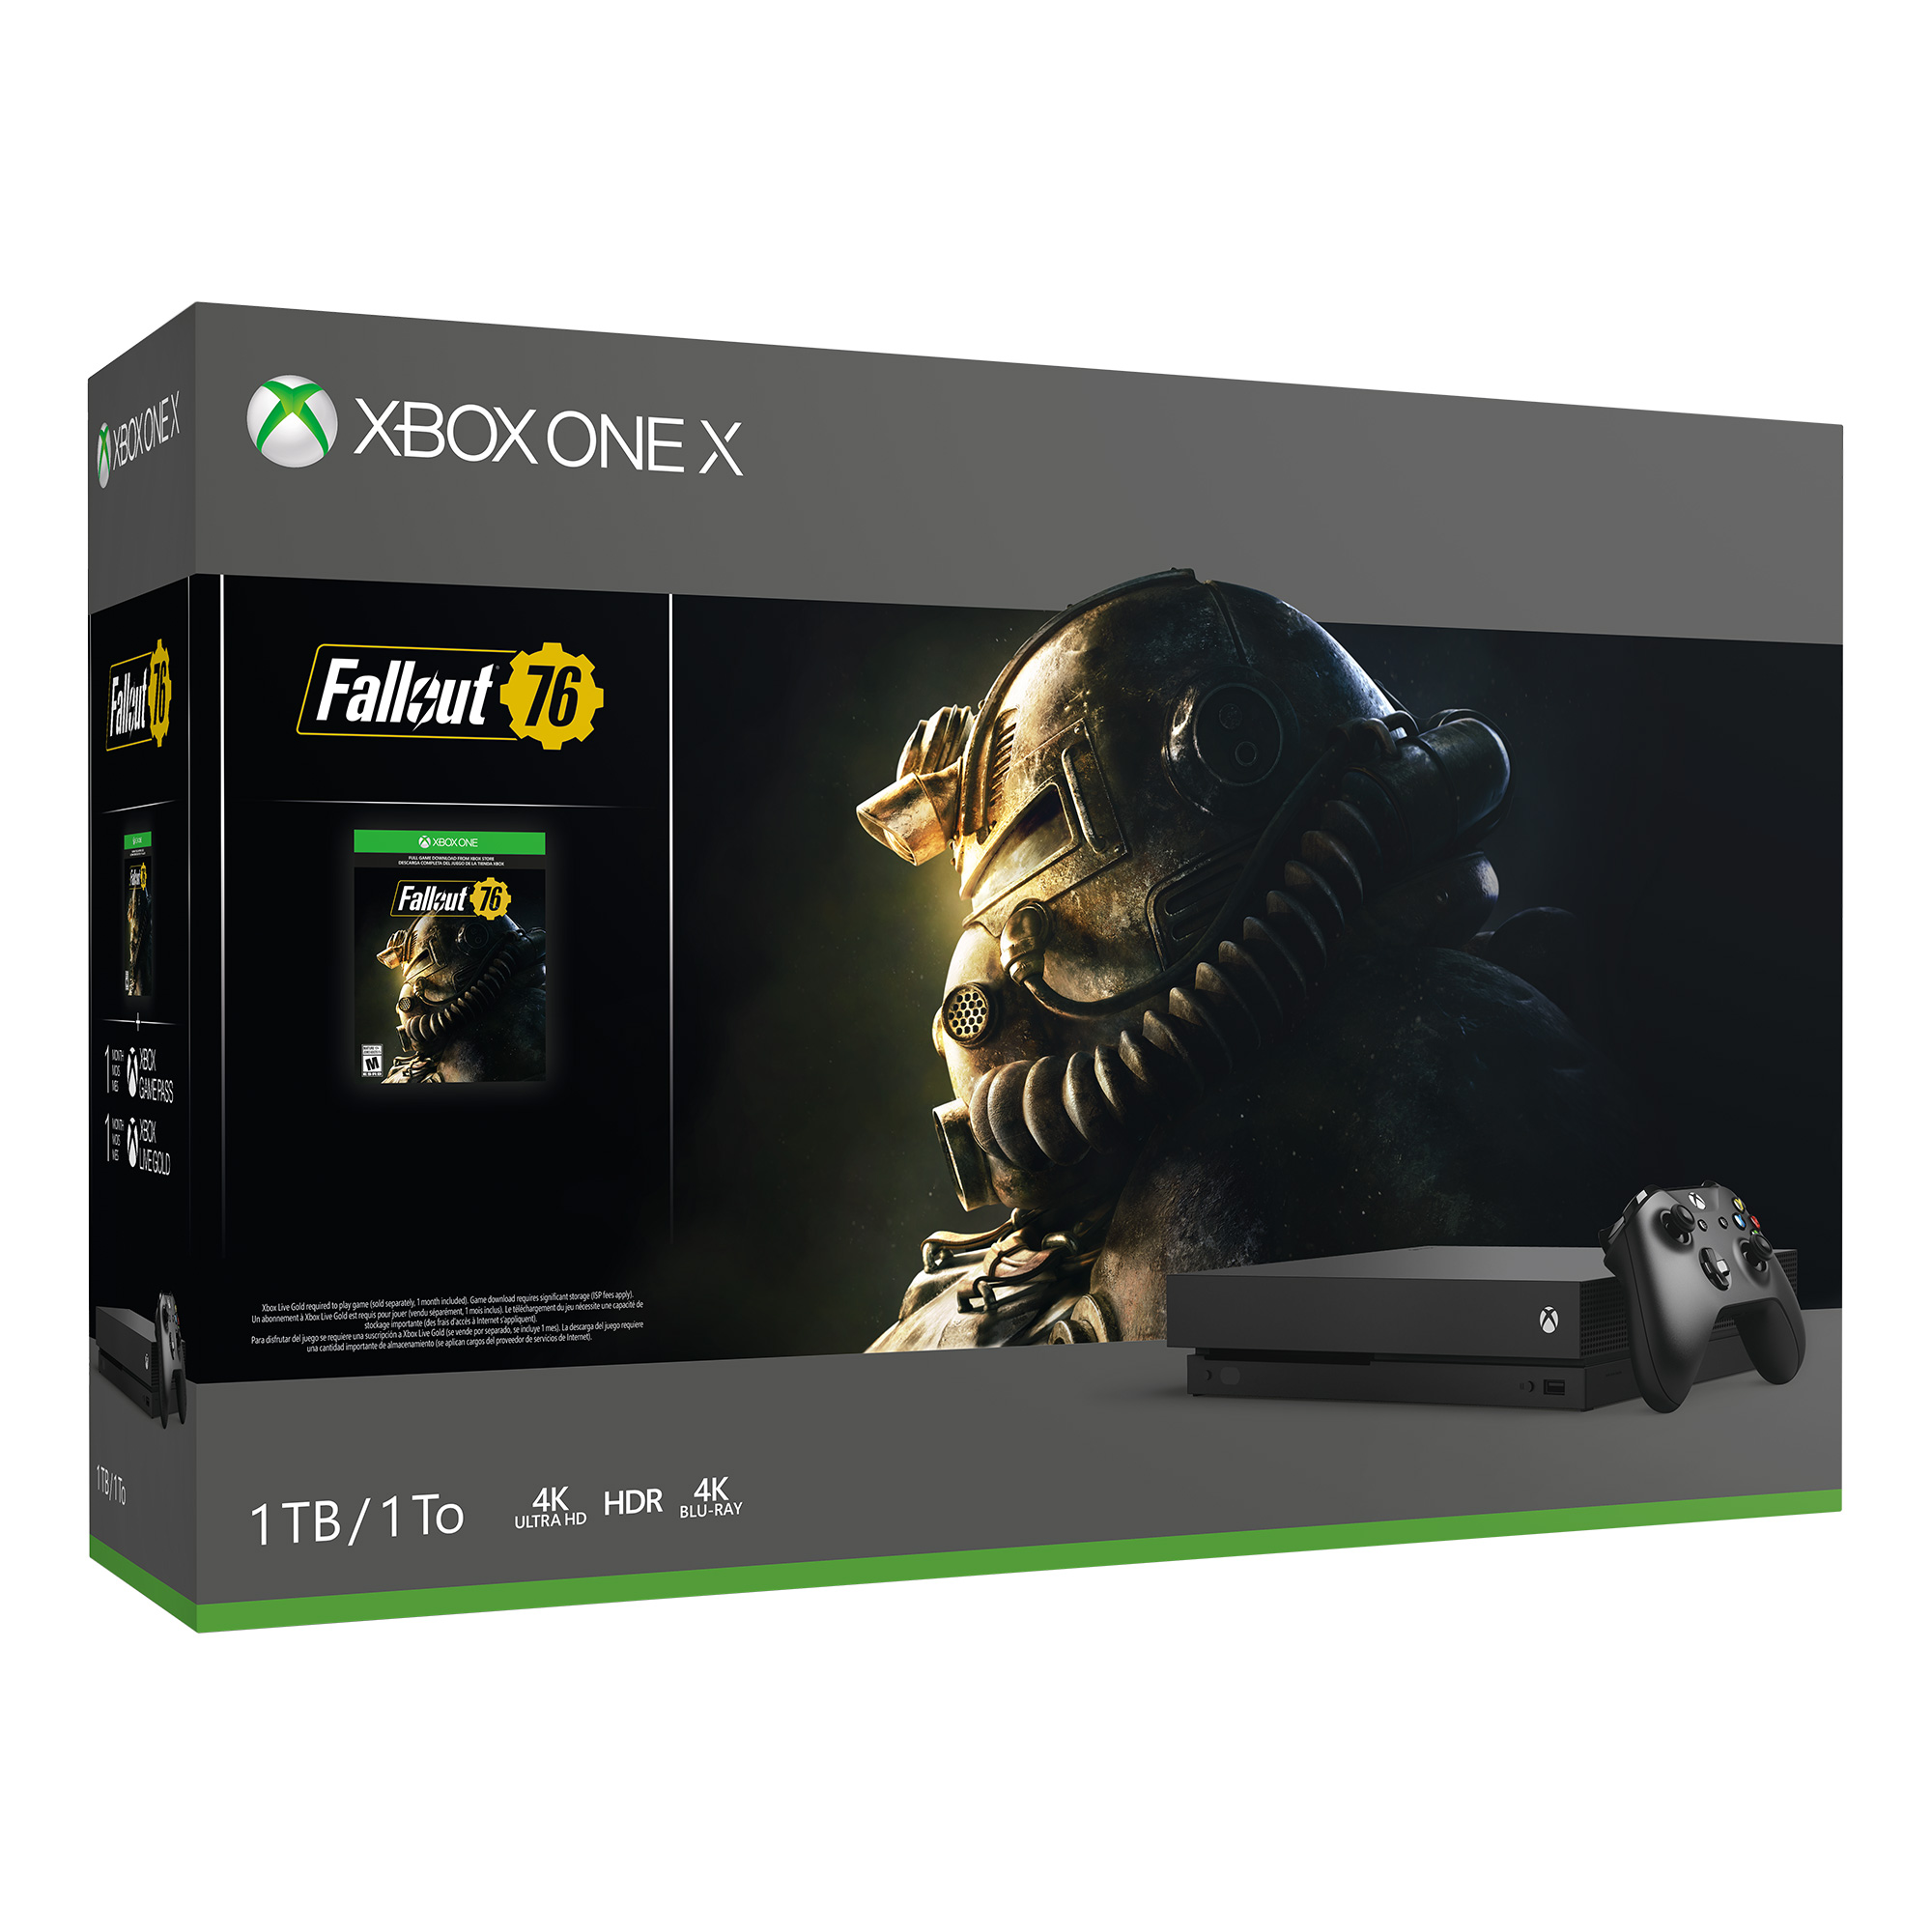 Microsoft Xbox One X 1TB Fallout 76 Bundle, Black, CYV-00146